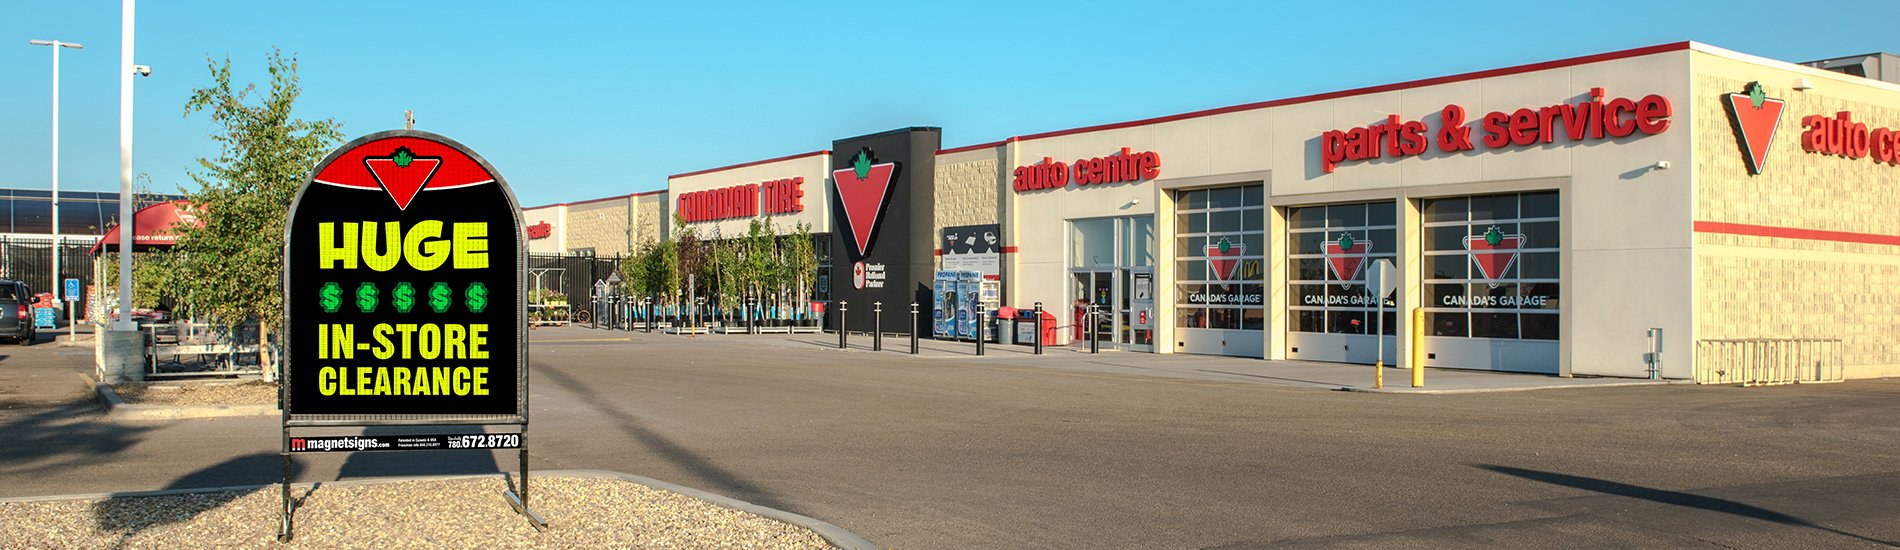 Canadian tire banner